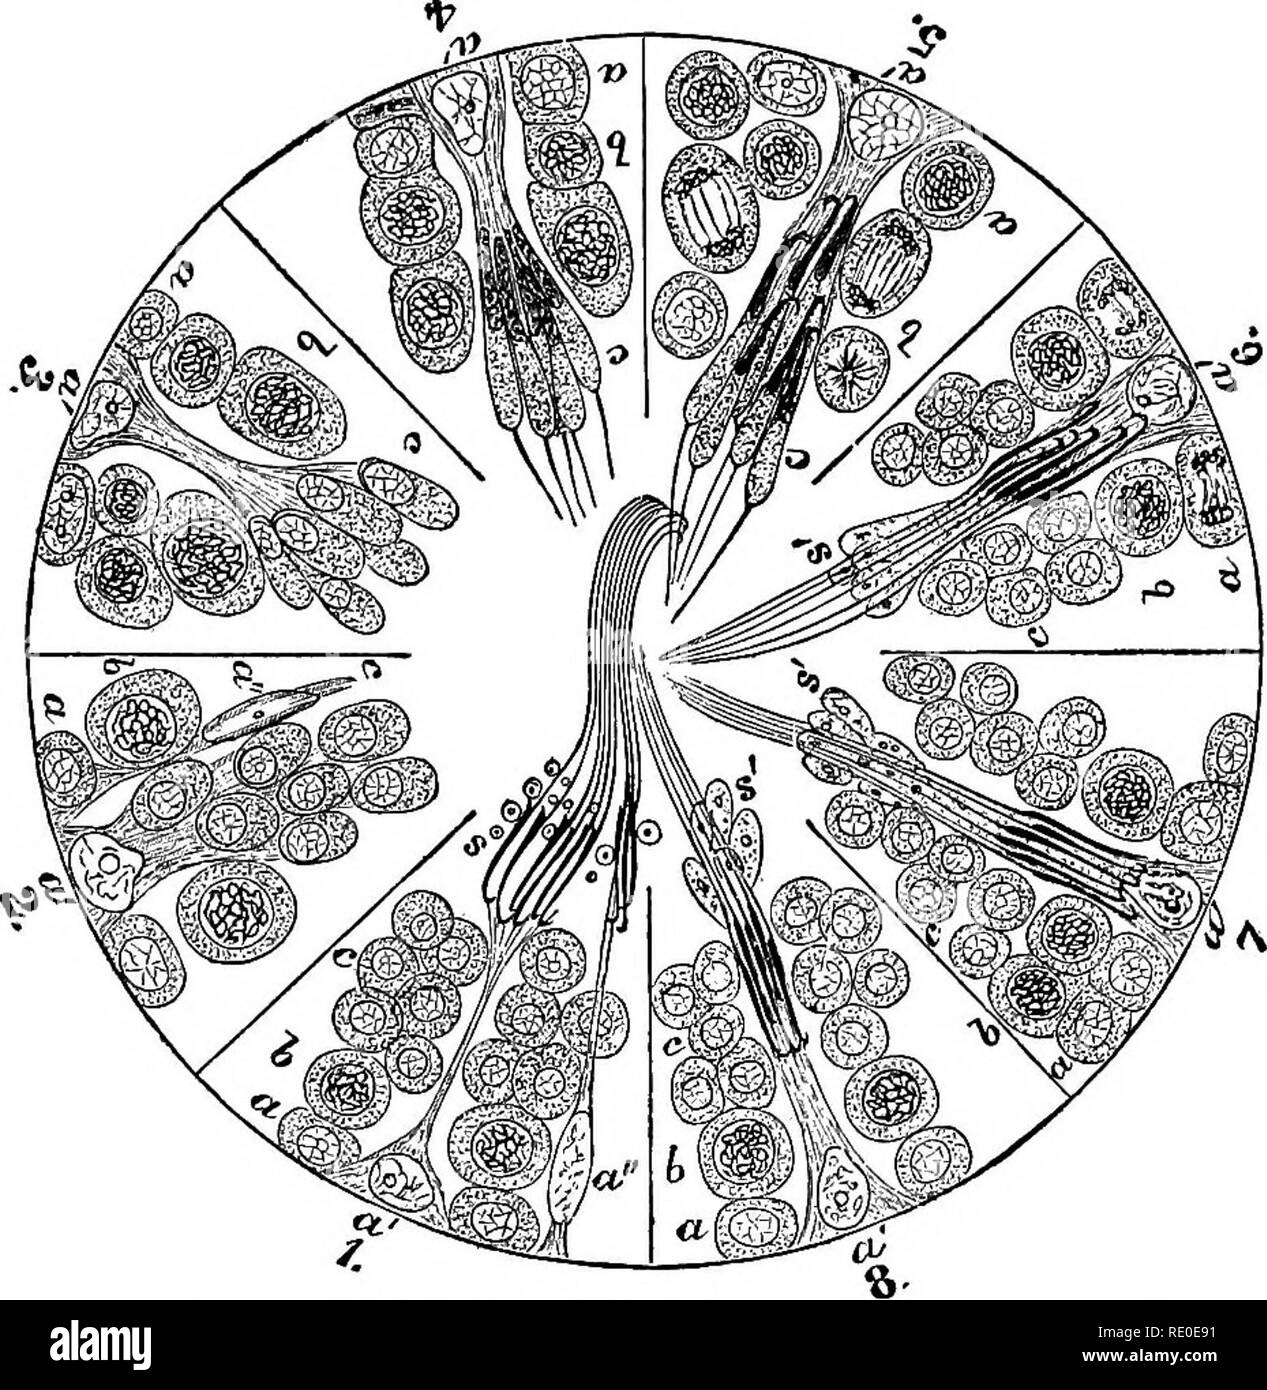 . A laboratory manual and text-book of embryology. Embryology. MATURATION 25. Fig. 9.—Diagram showing cycle of phases in the spermatogenesis of the rat (Schafer, Brown). The numbered segments of the circle represent portions of different seminiferous tubules, a, spermato- gonia; a', sustentacular cells; b, spermatocytes actively dividing in 5; c, spermatids forming an irregular clump in 1, 6, 7 and 8 and connected to sustentacular cell a' in 2, 3, 4 and 5. In 6, 7 and 8 advanced spermatozoa of one generation are seen between spermatids of the next generation, s', parts of sperma- tids which di - Stock Image